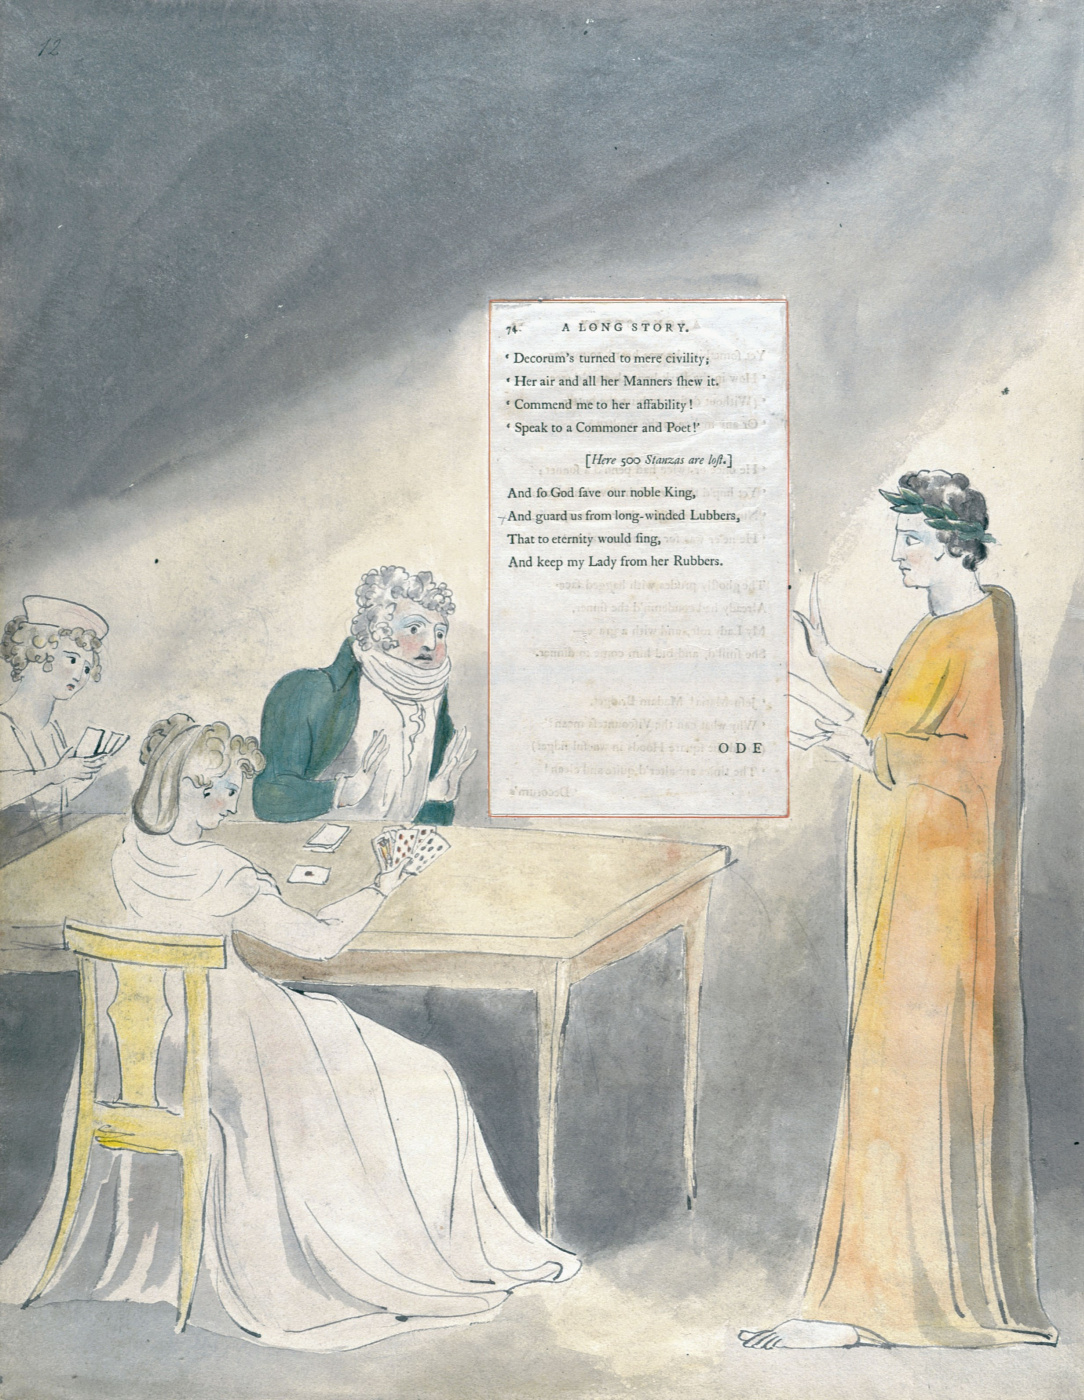 William Blake. Illustrations to the poems. Long story. Sheet 12